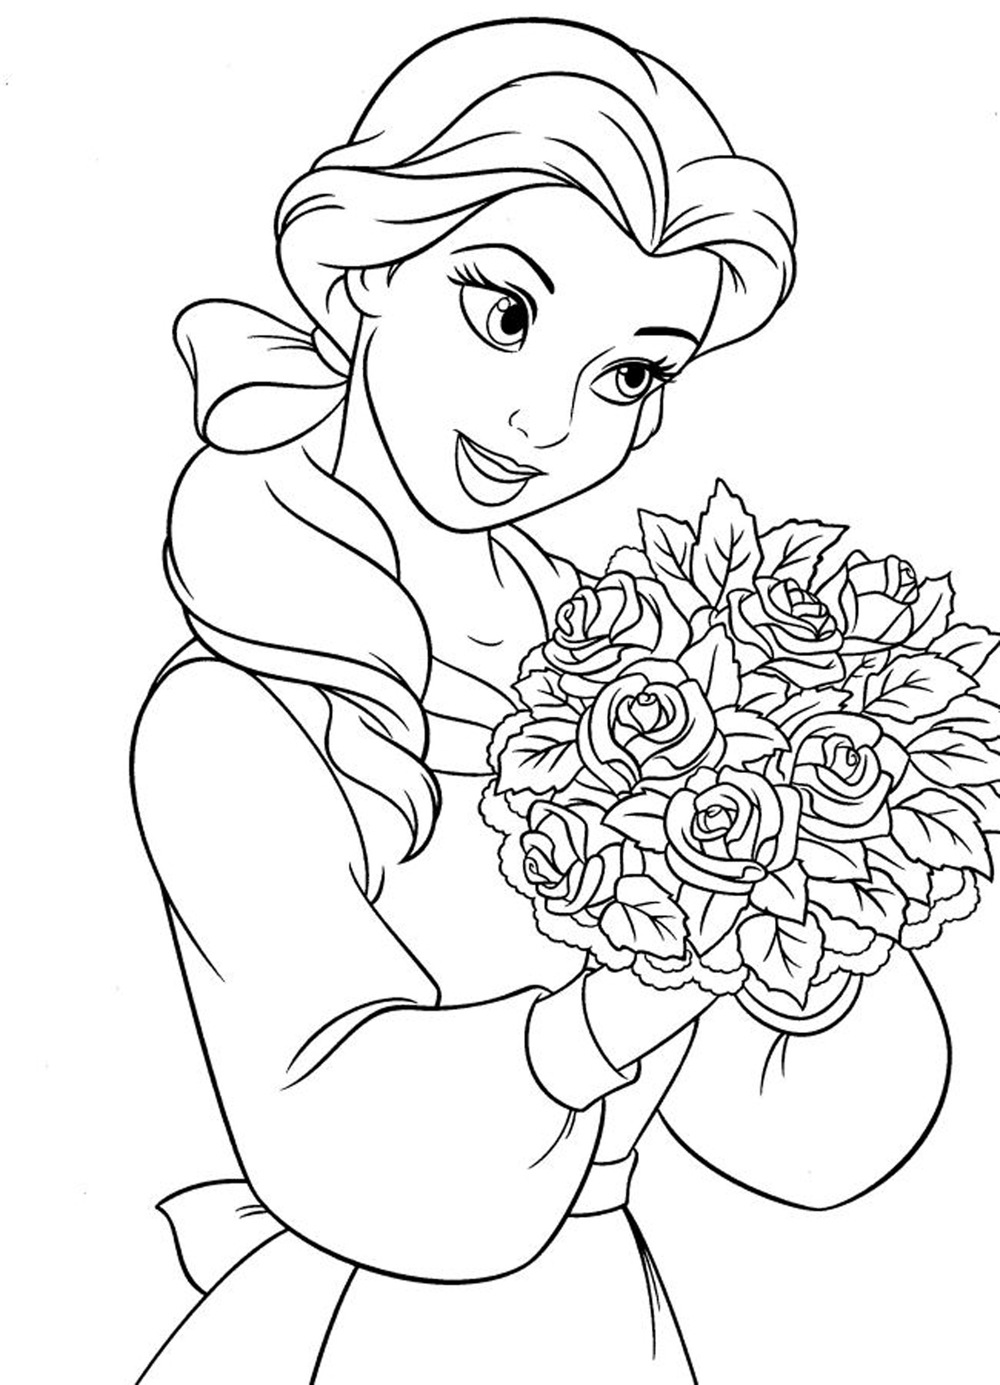 colouring pages for disney princesses disney princess belle coloring pages to kids princesses colouring for pages disney